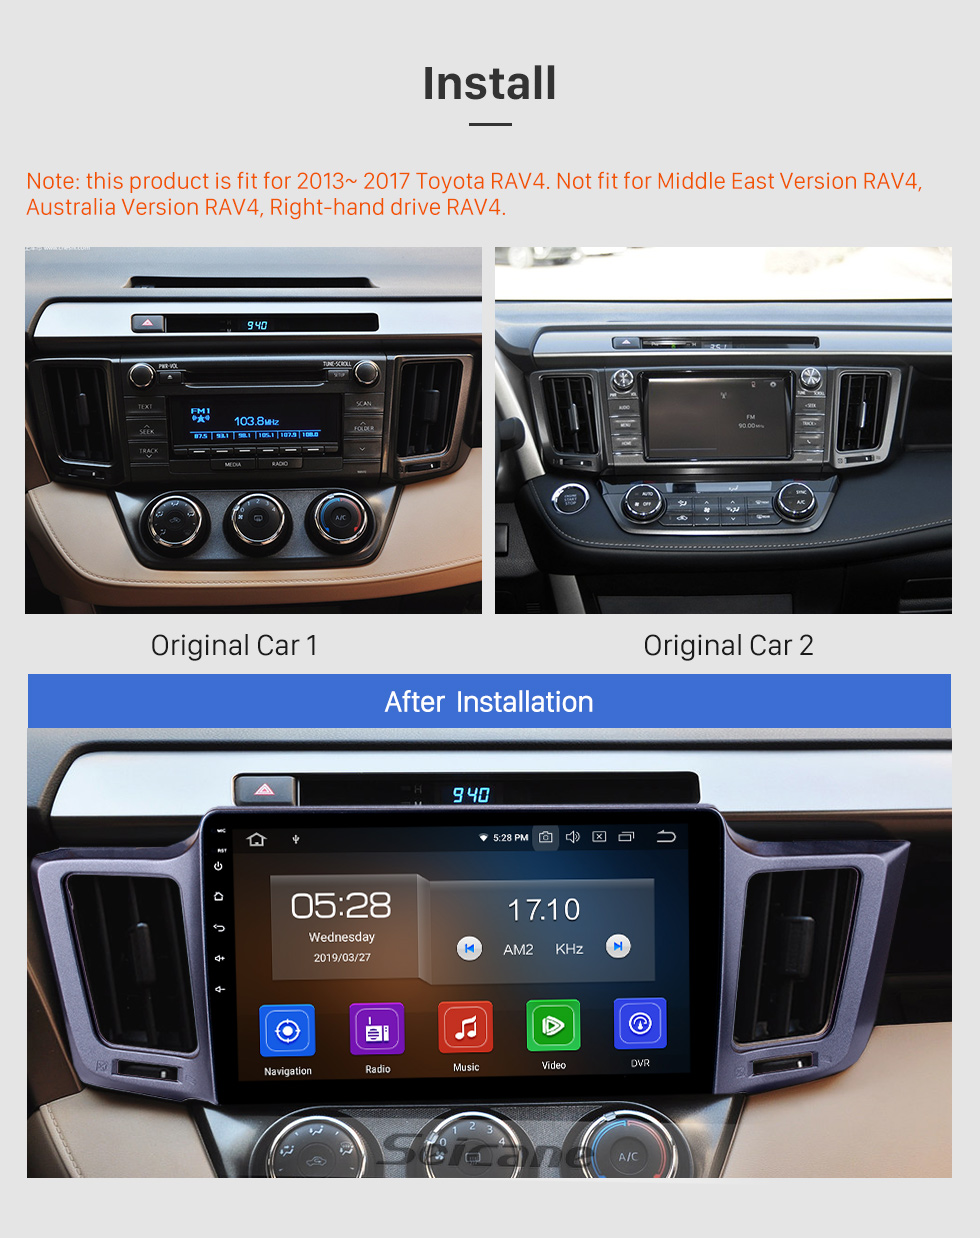 Seicane 10,1 pouces Android 9.0 Radio de navigation GPS pour 2013-2016 Toyota RAV4 LHD avec écran tactile HD Carplay Bluetooth WIFI USB support AUX Mirror Link OBD2